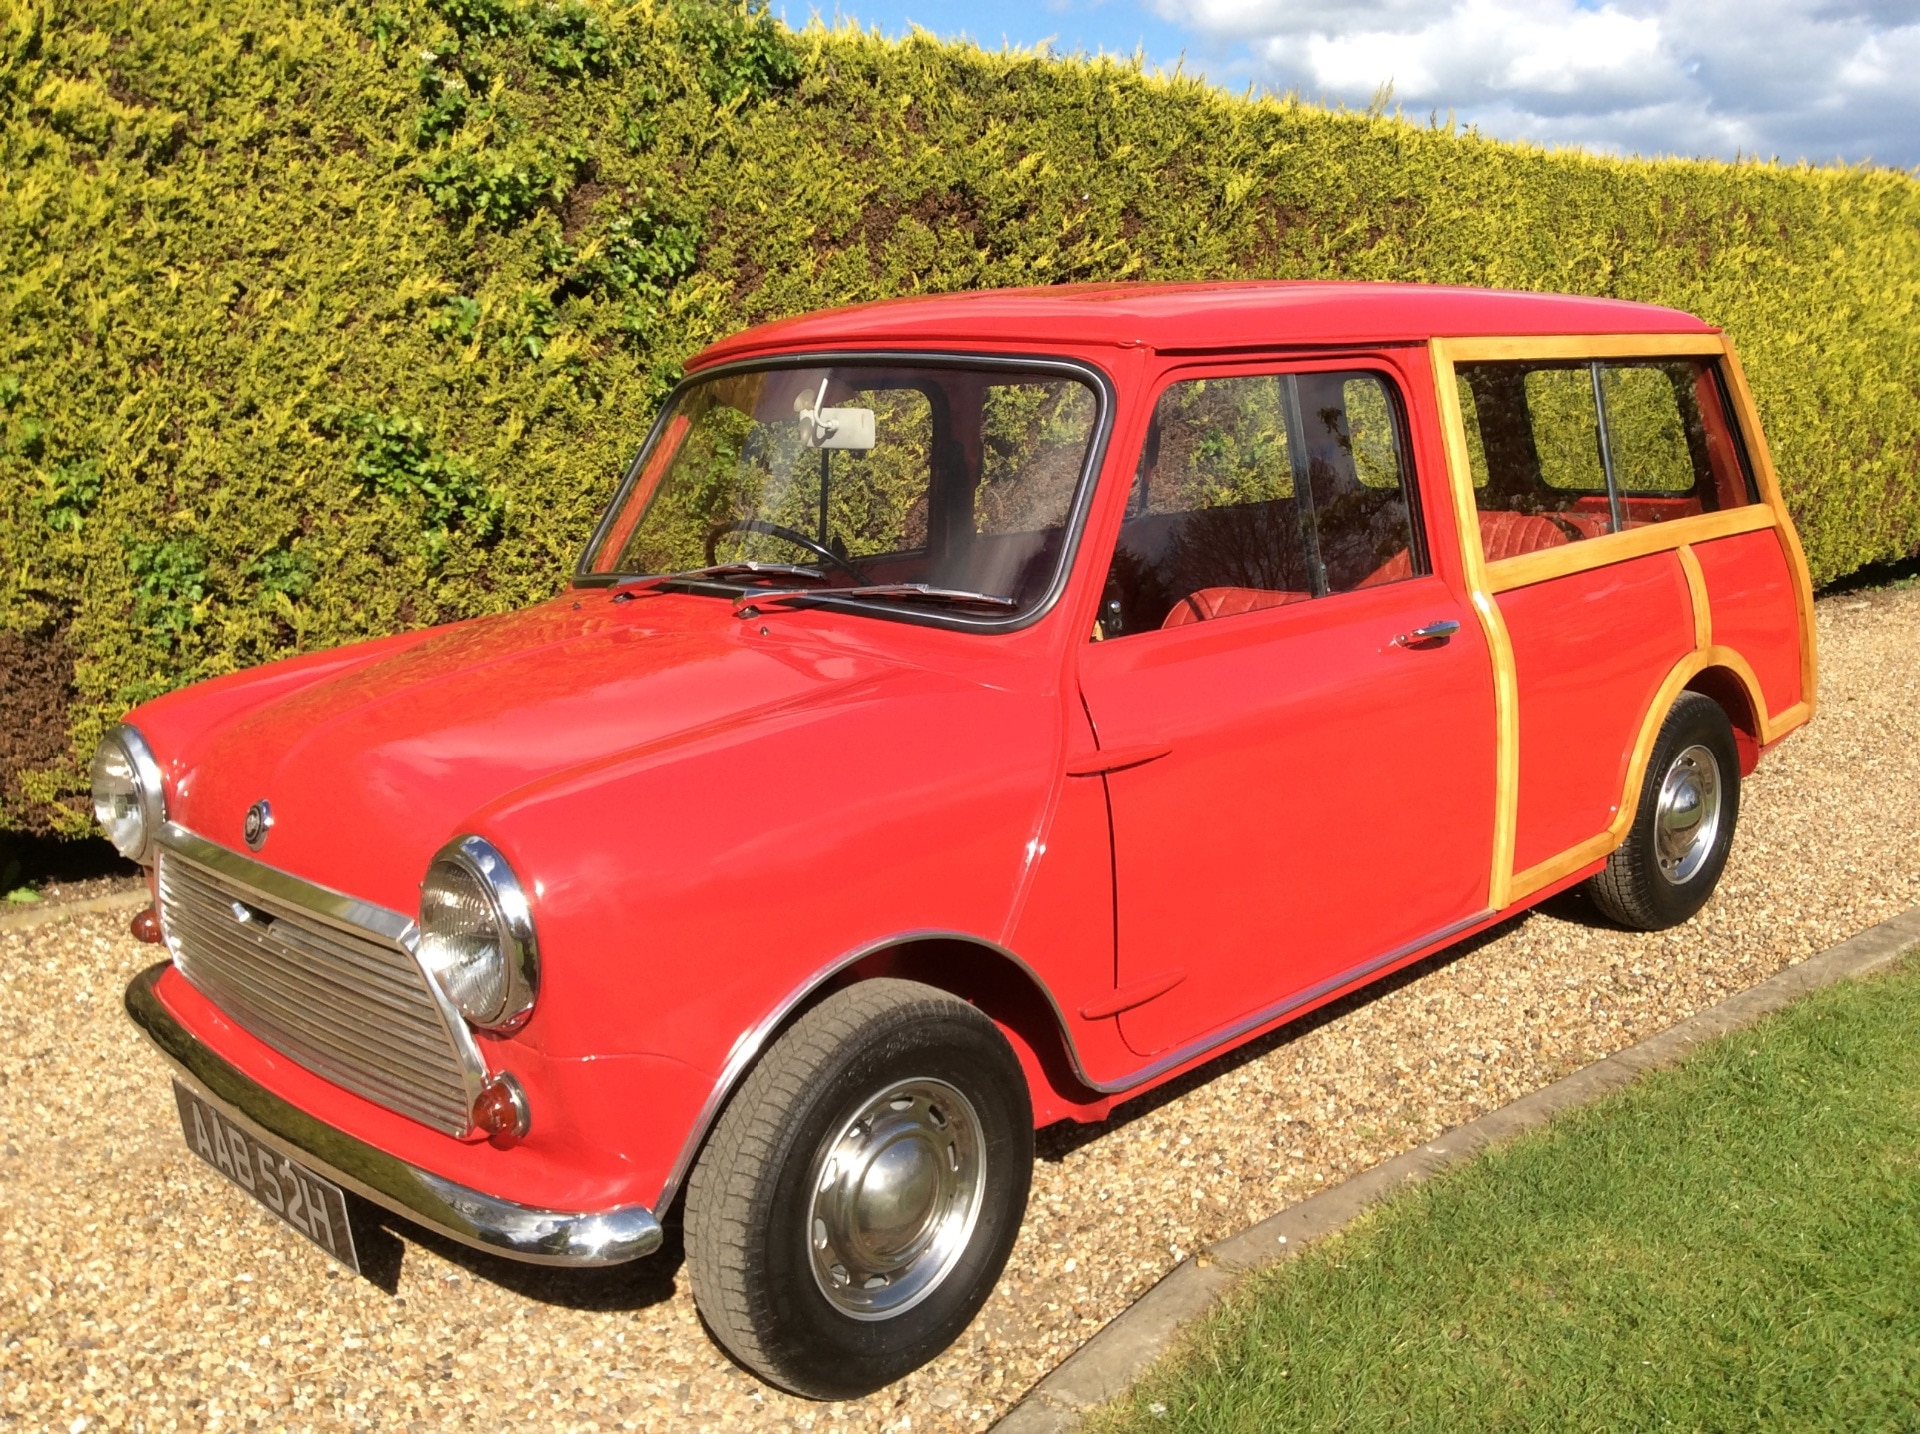 used austin mini 1000 countryman 5 doors estate for sale in epping essex lmc epping ltd. Black Bedroom Furniture Sets. Home Design Ideas